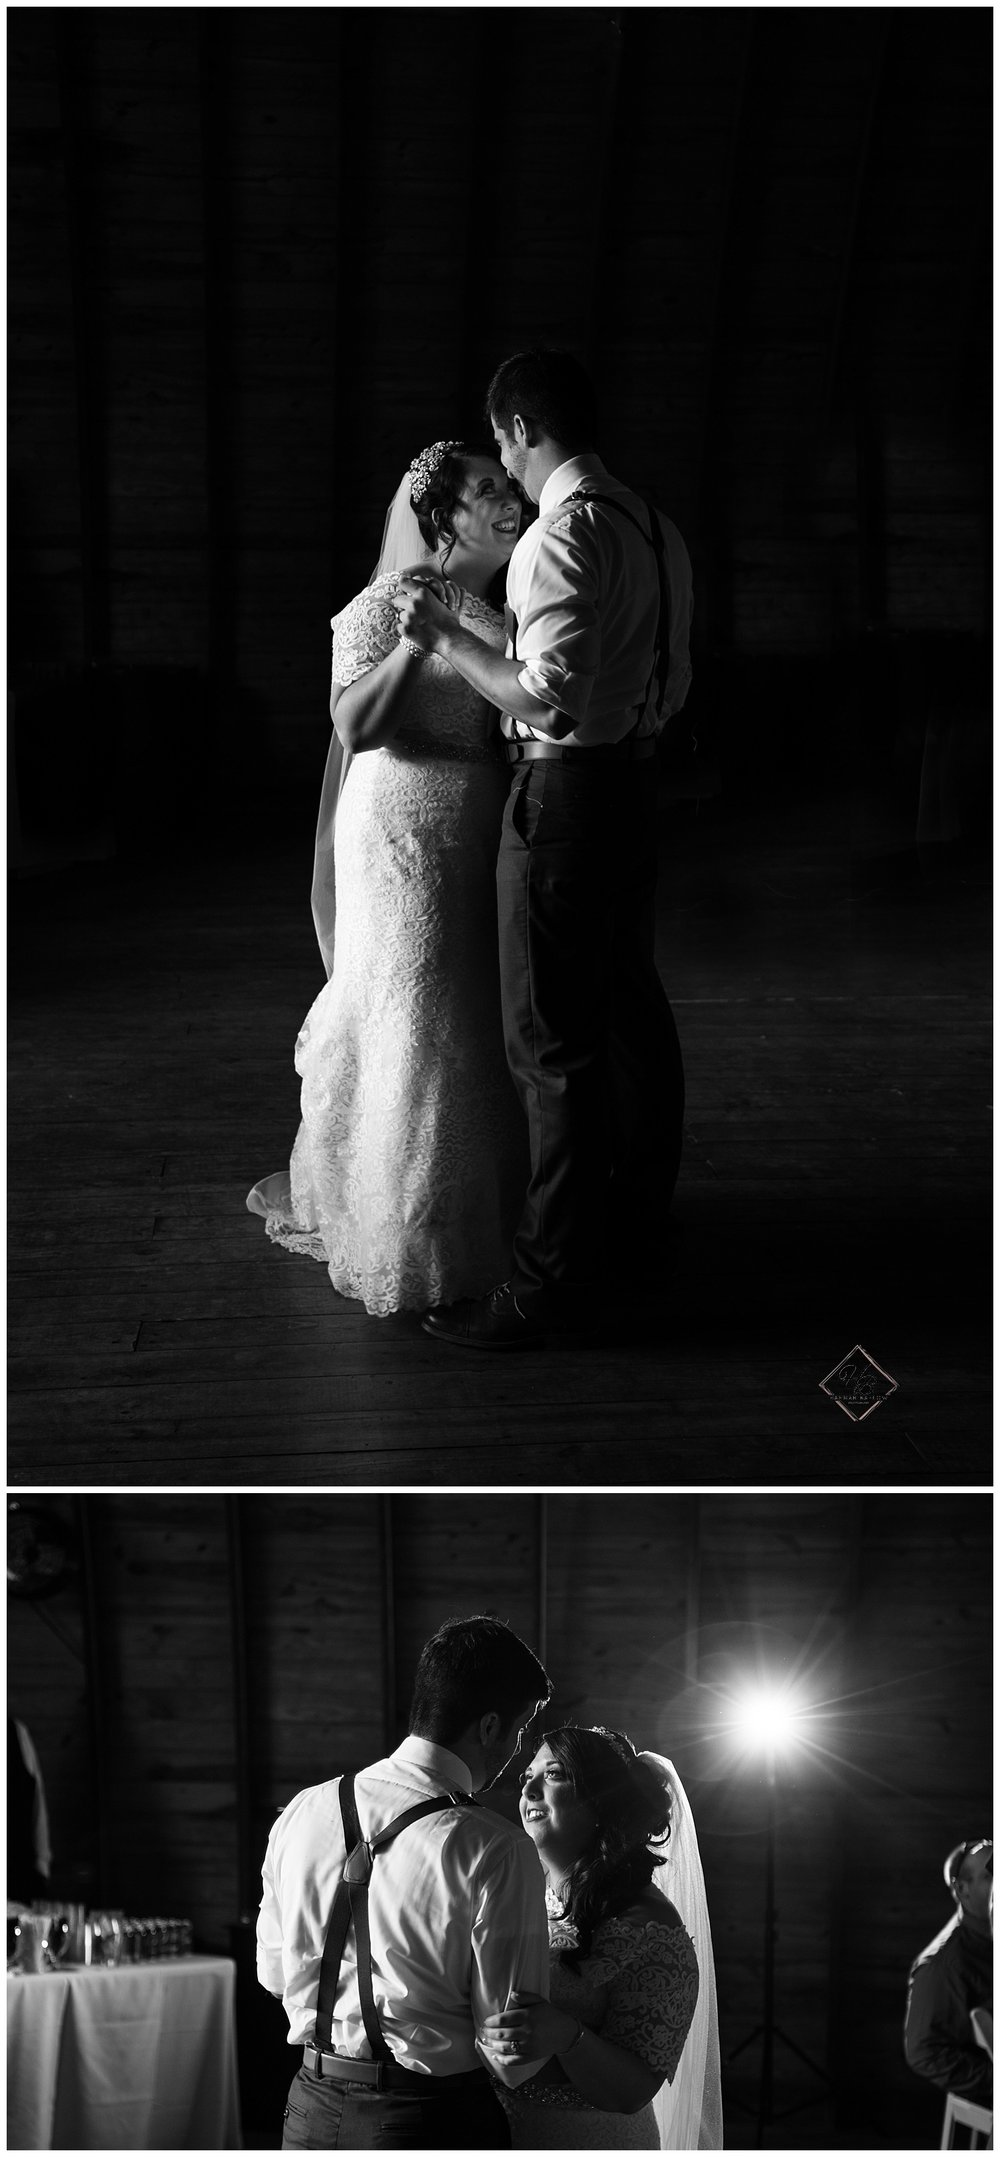 Irons Mills Vintage Wedding Bride & Groom First Dance Black and White